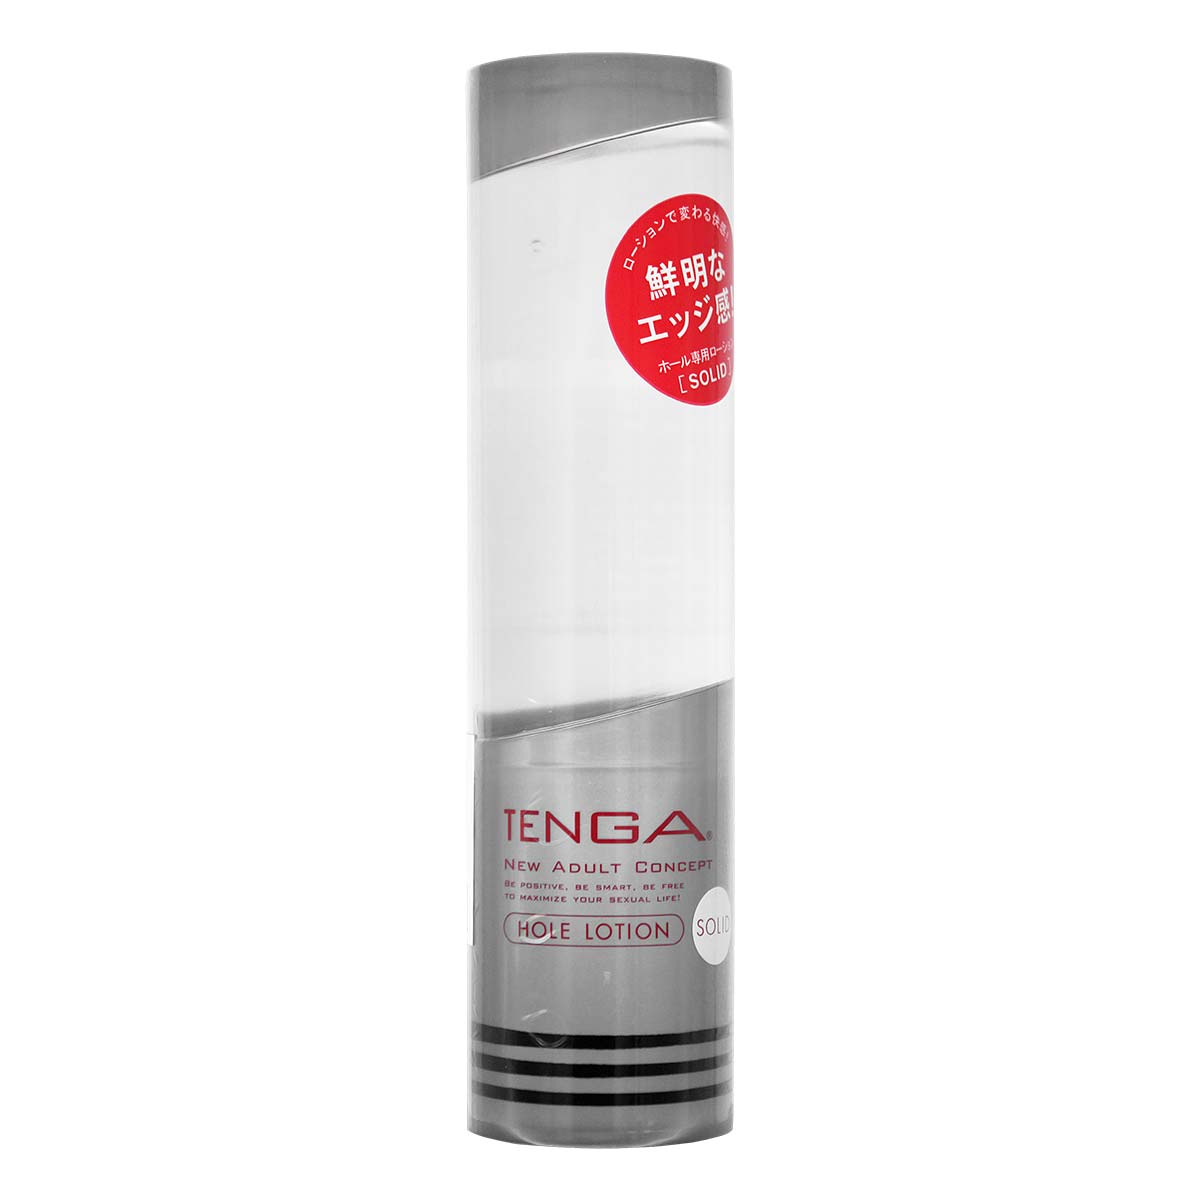 TENGA Hole Lotion SOLID 170ml Water-based Lubricant